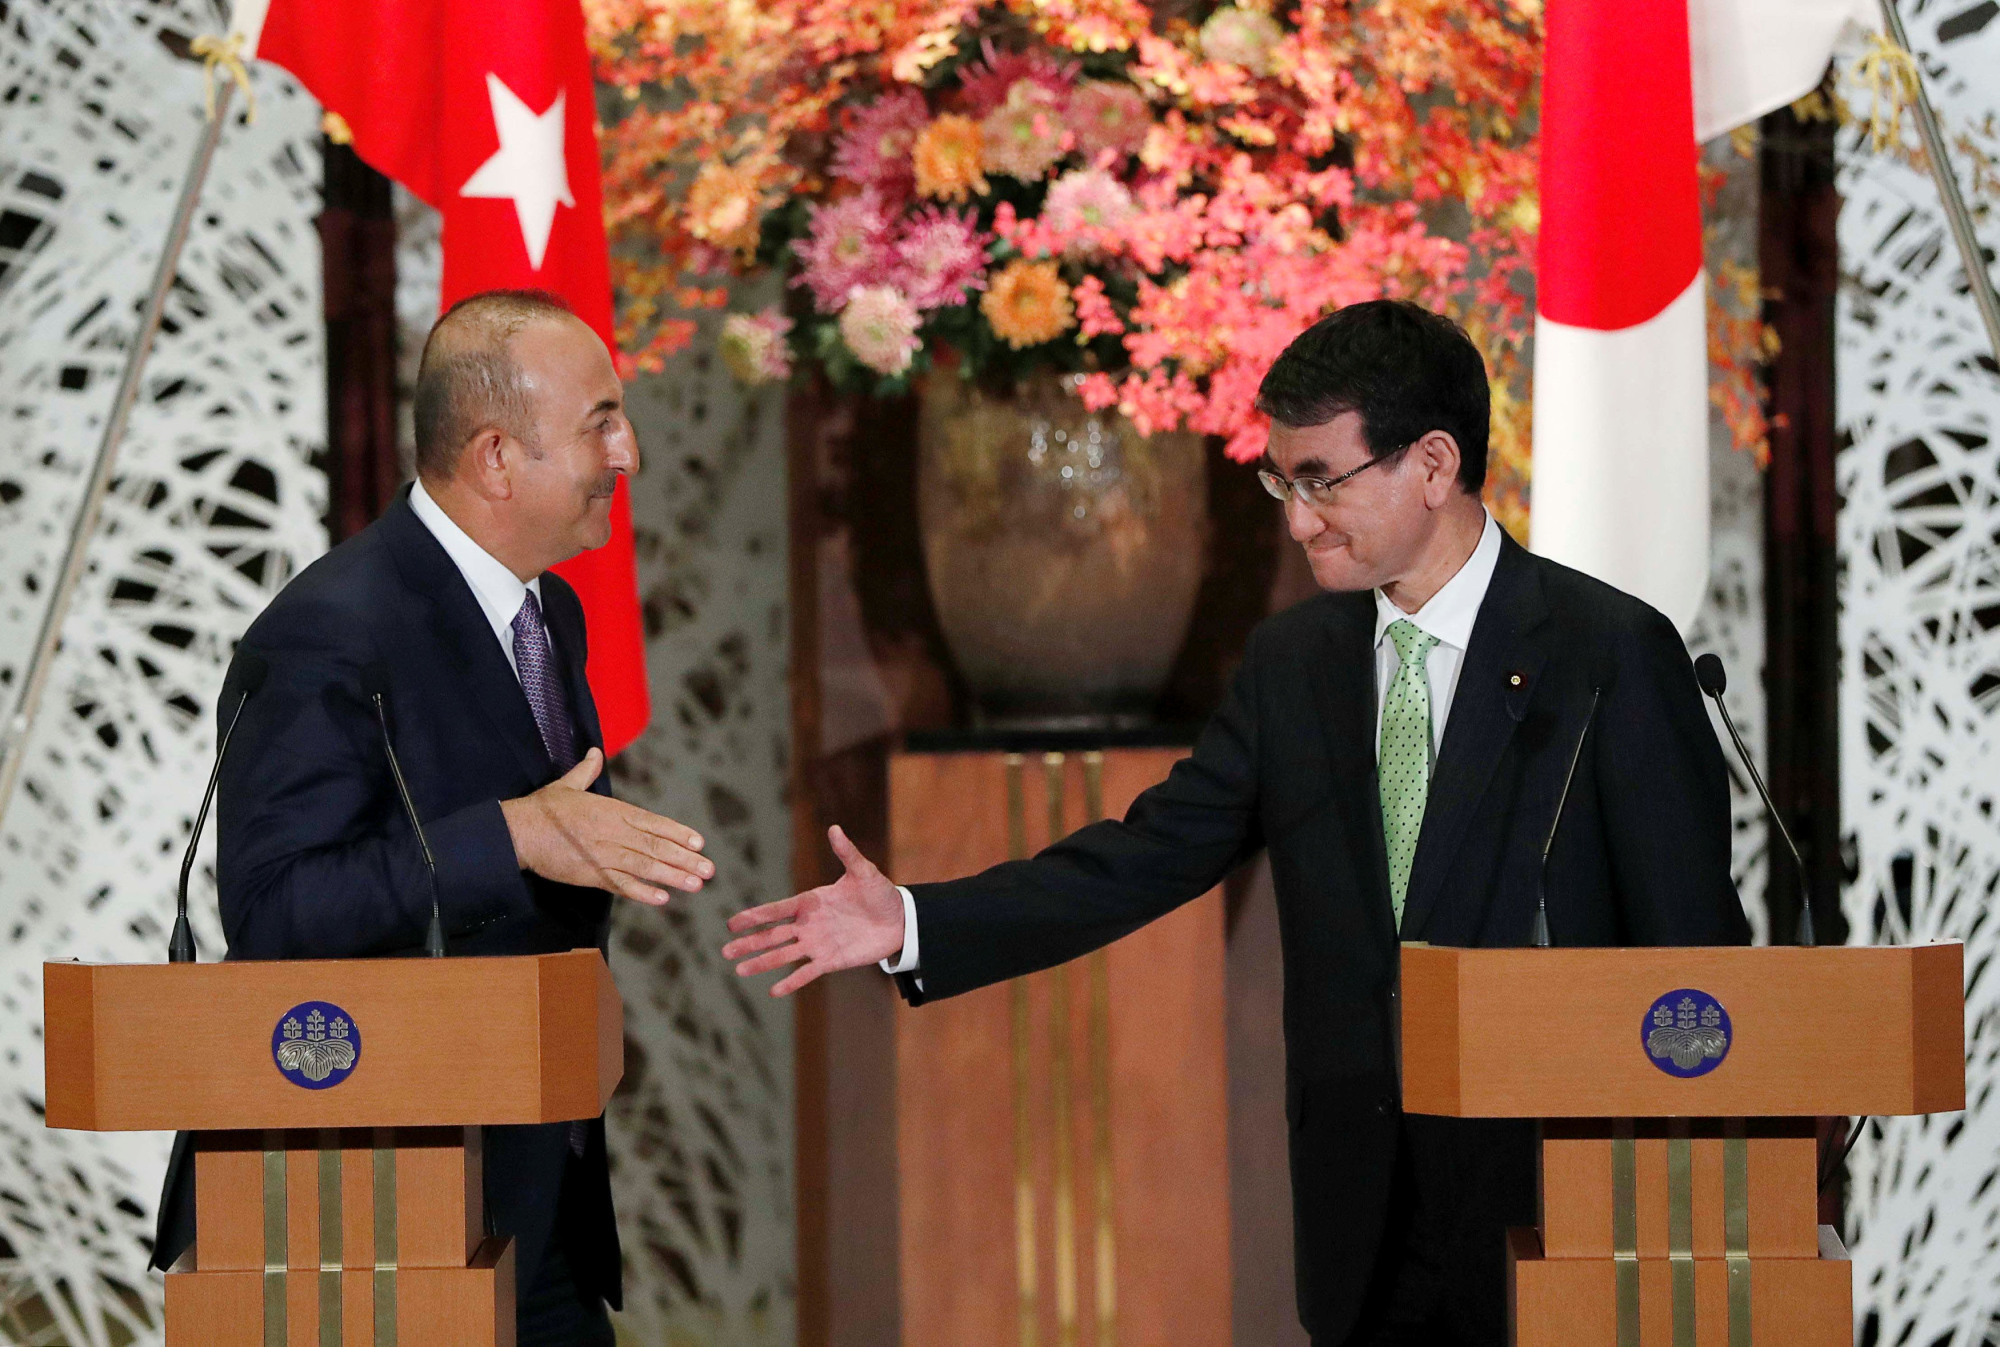 Foreign Minister Taro Kono and his Turkish counterpart, Mevlut Cavusoglu, hold a news conference in Tokyo on Monday. | REUTERS